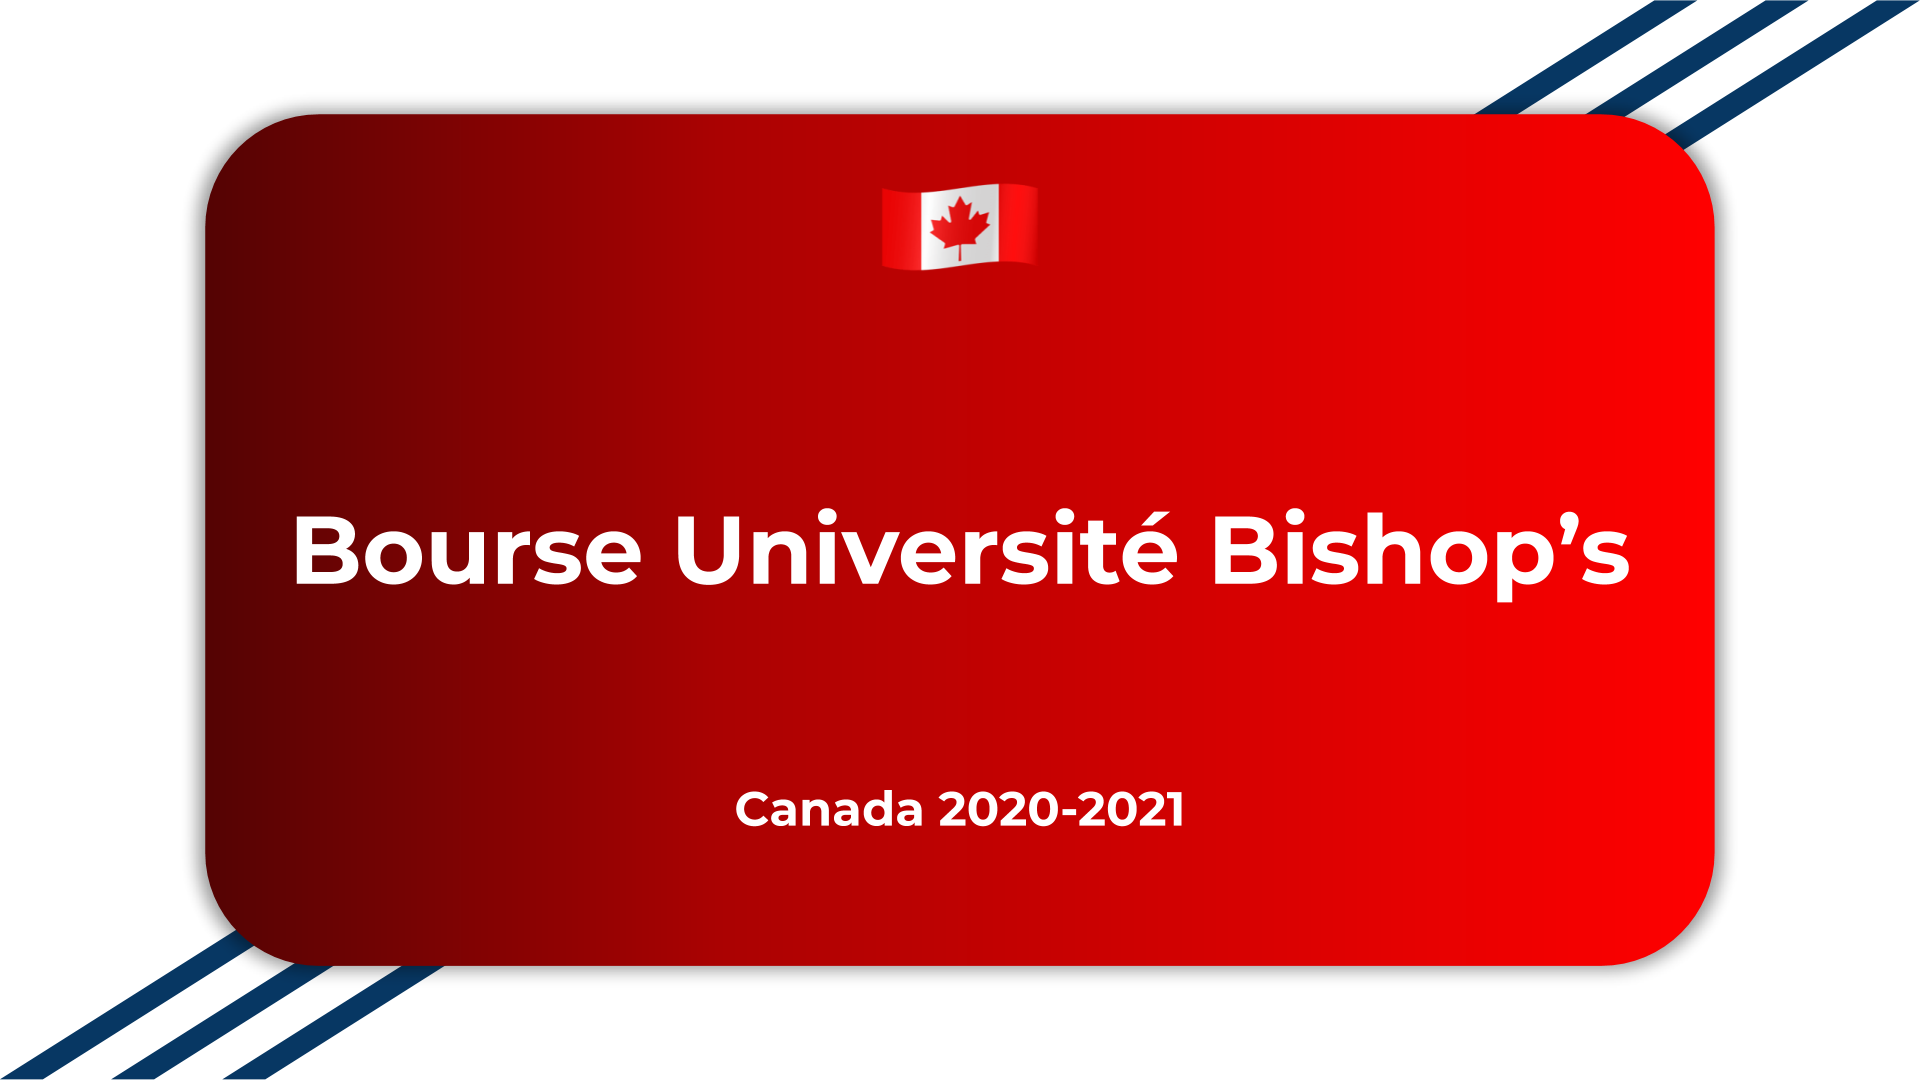 Bourse Université Bishop's Canada 2020